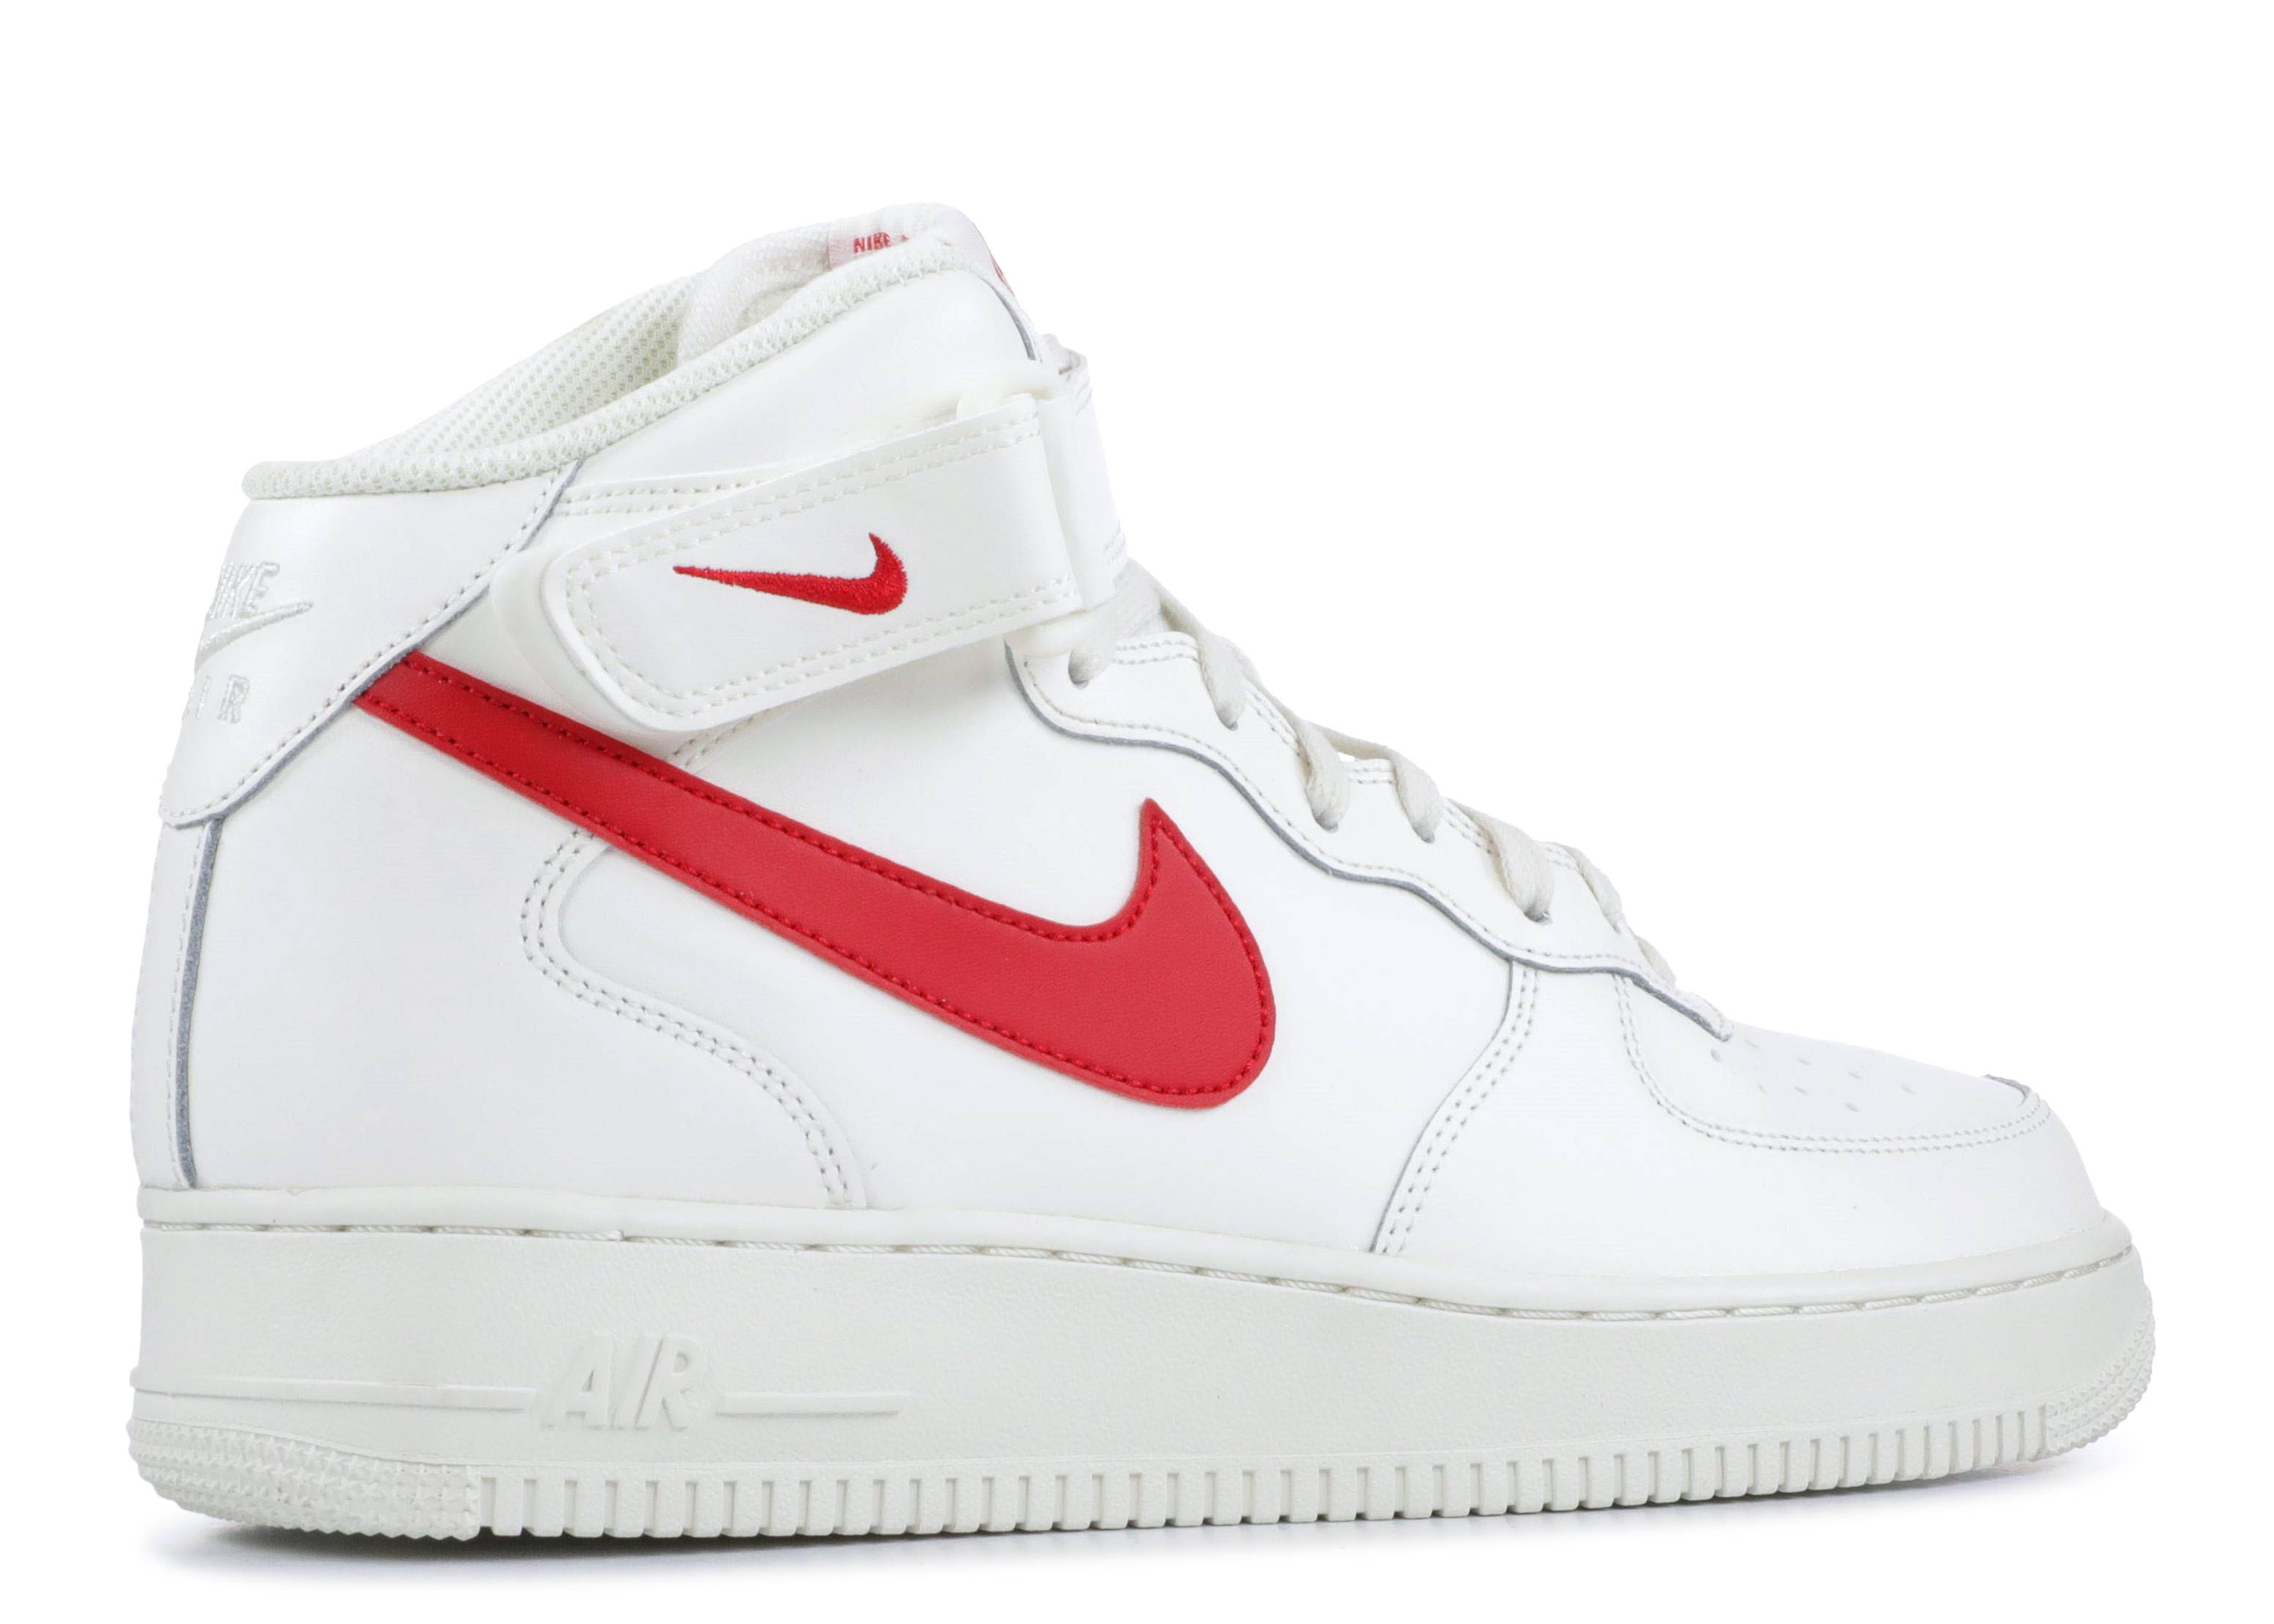 vendedor Prisionero de guerra Unirse  Air Force 1 Mid '07 'Sail' - Nike - 315123 126 - sail/university red |  Flight Club